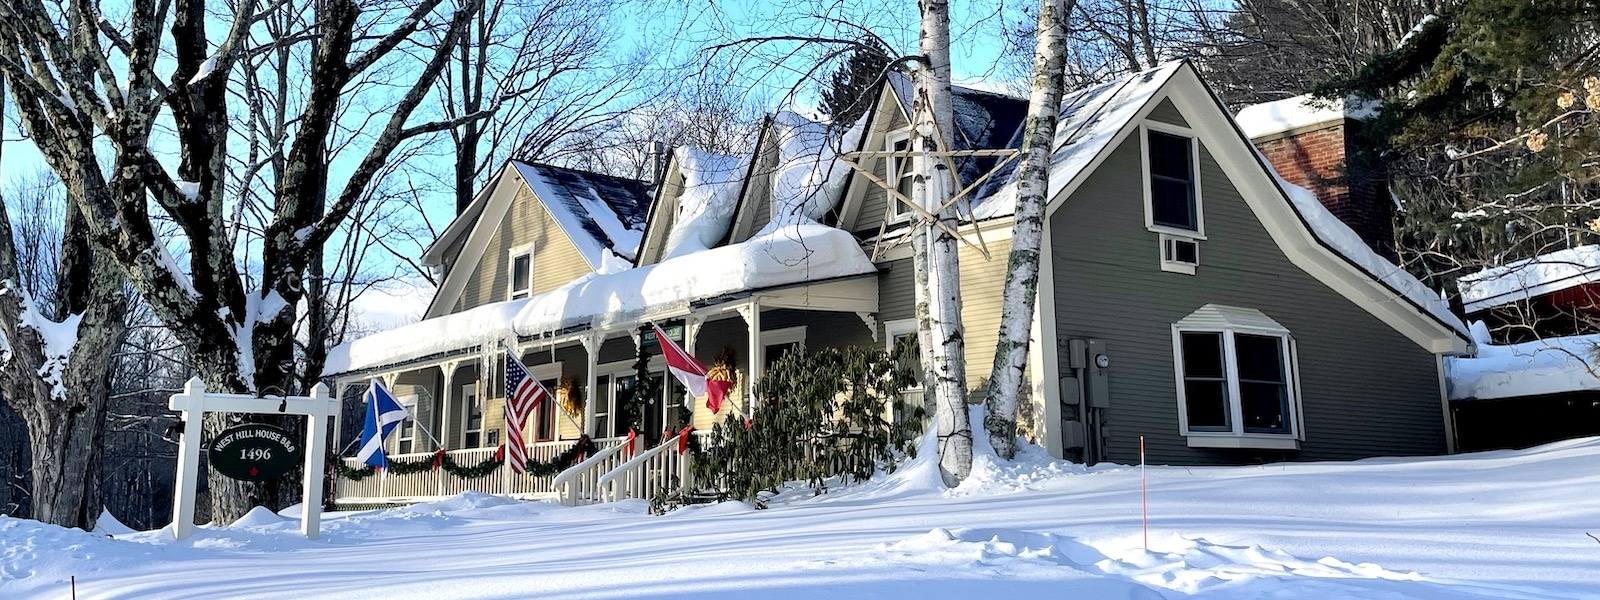 West Hill House B&B in the snow